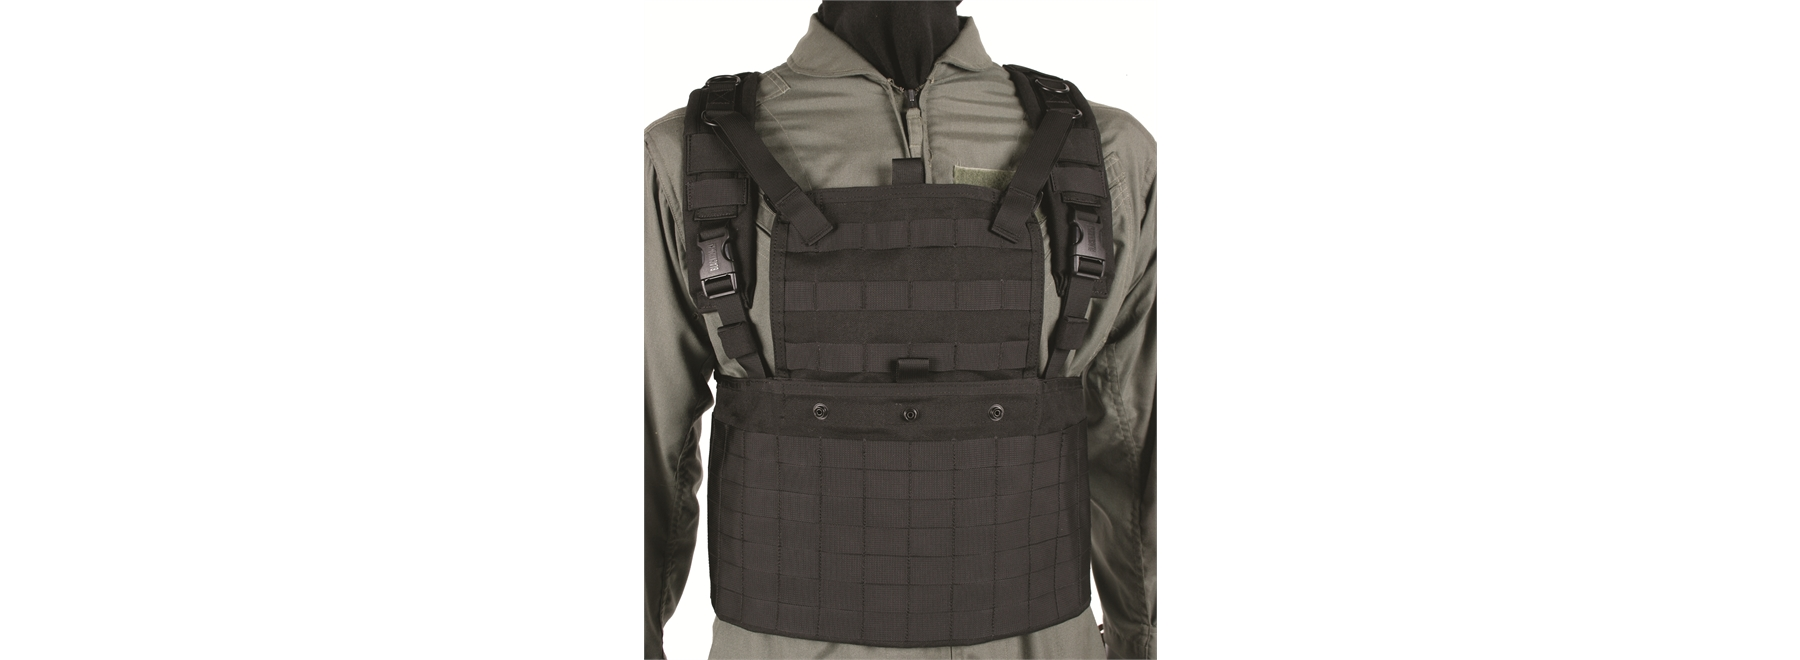 S.T.R.I.K.E.™ Commando Recon Chest Harness